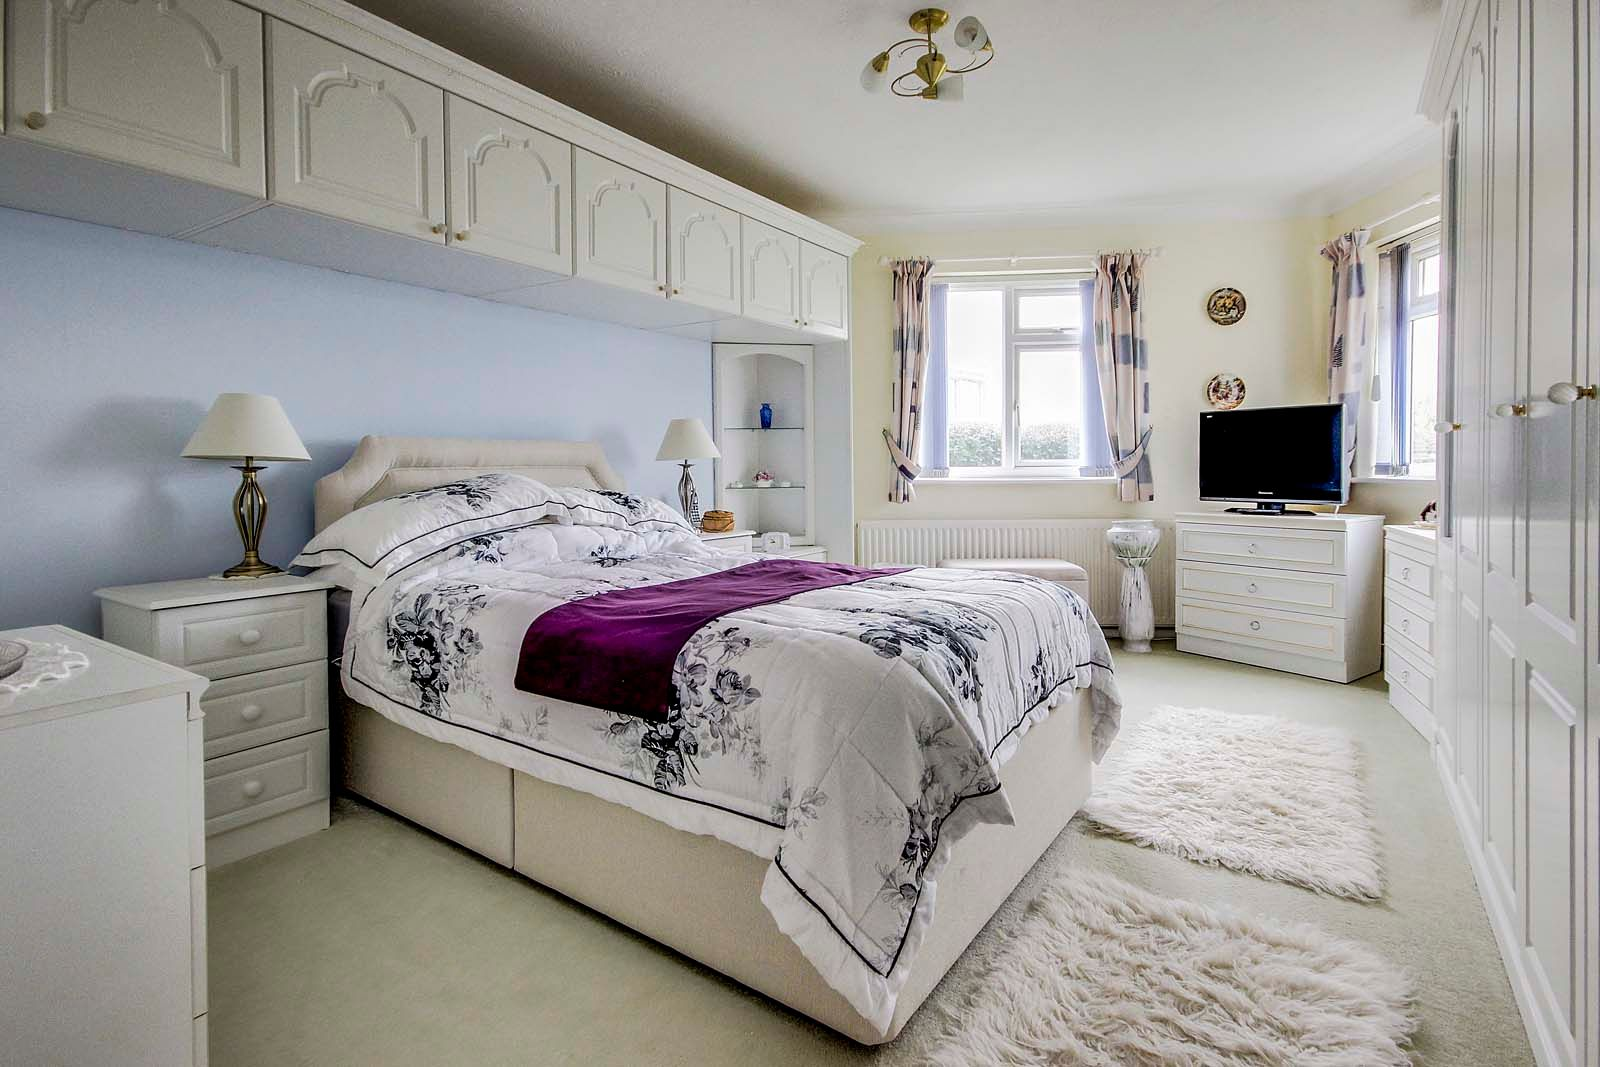 2 bed Apartment for sale in Rustington - Bedroom (Property Image 4)